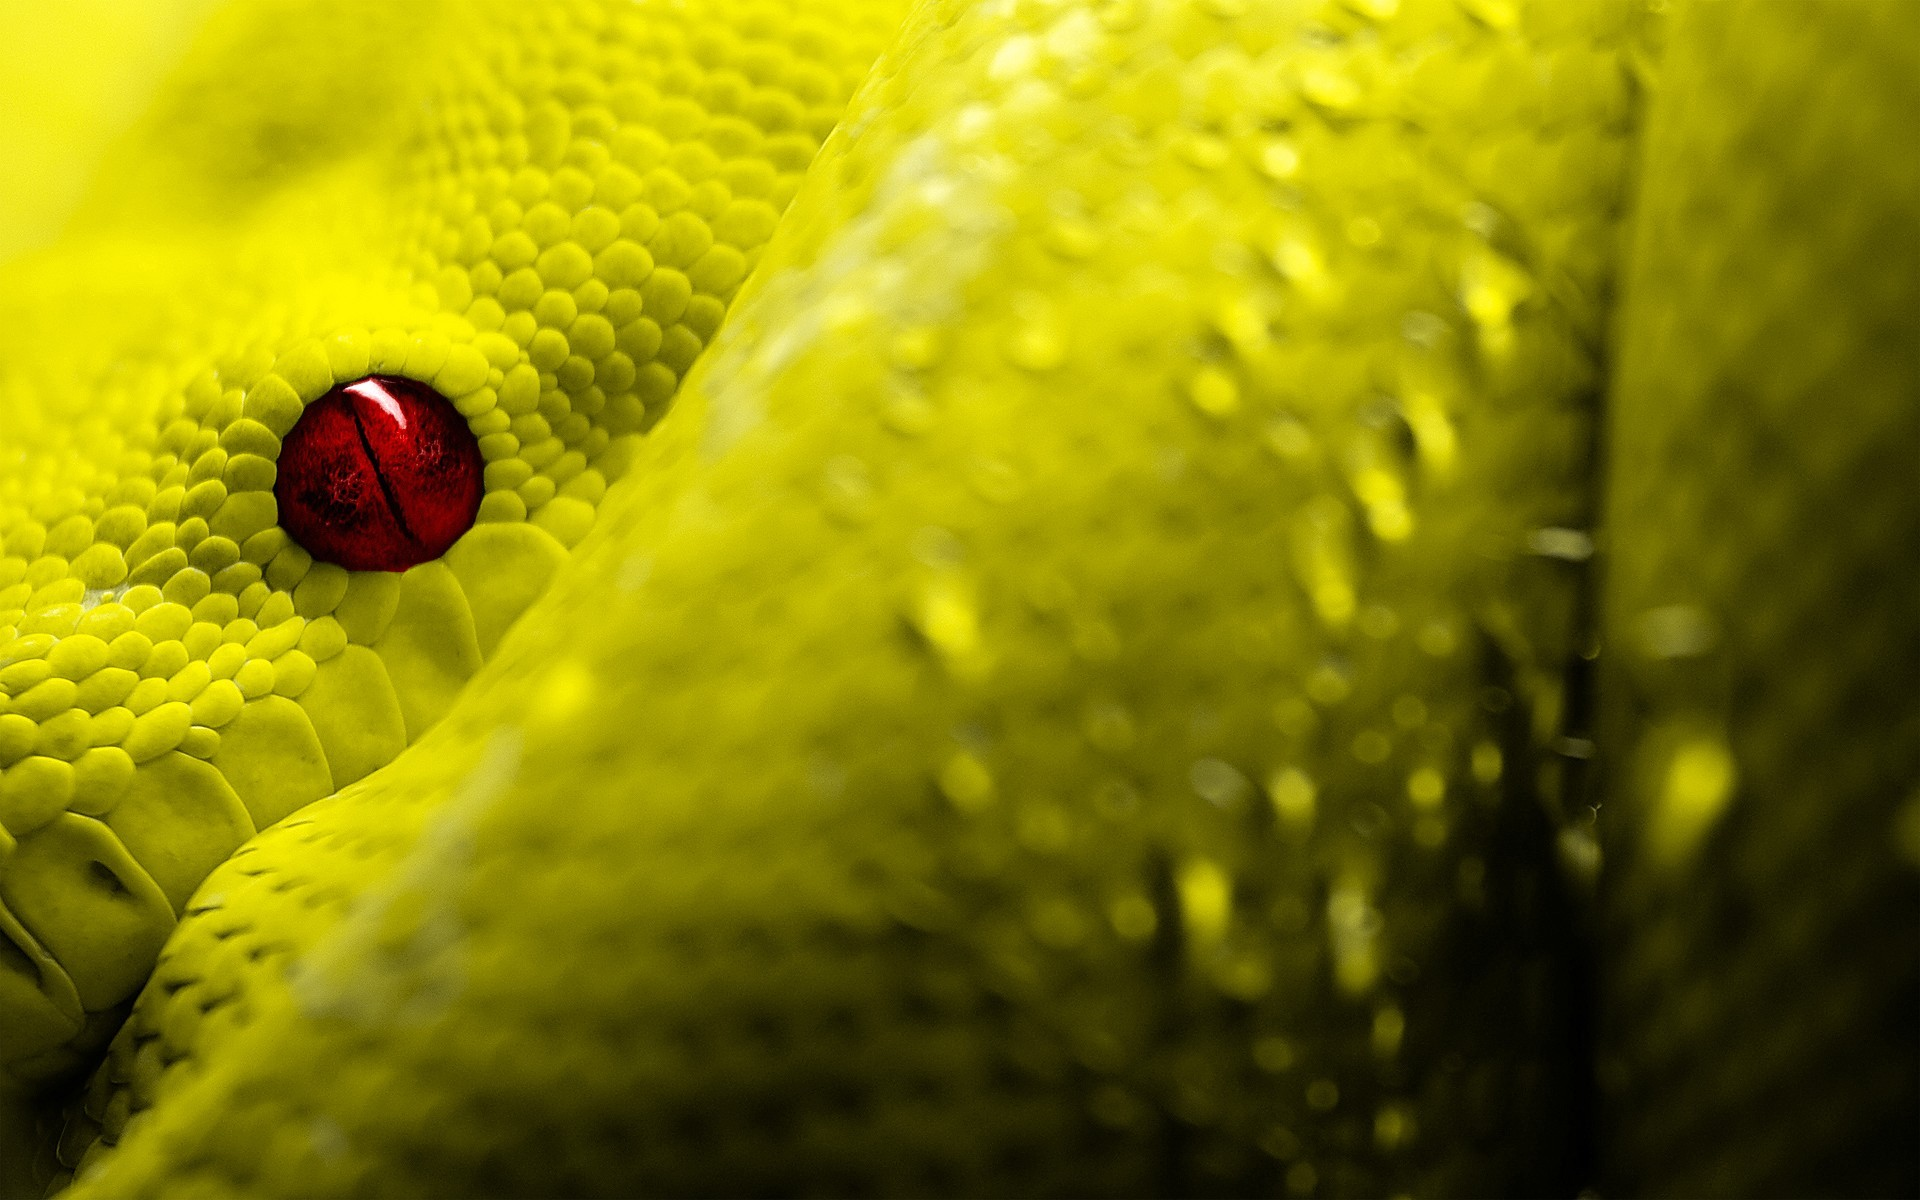 Eyes Red Reptiles Scales Snakes Wallpaper